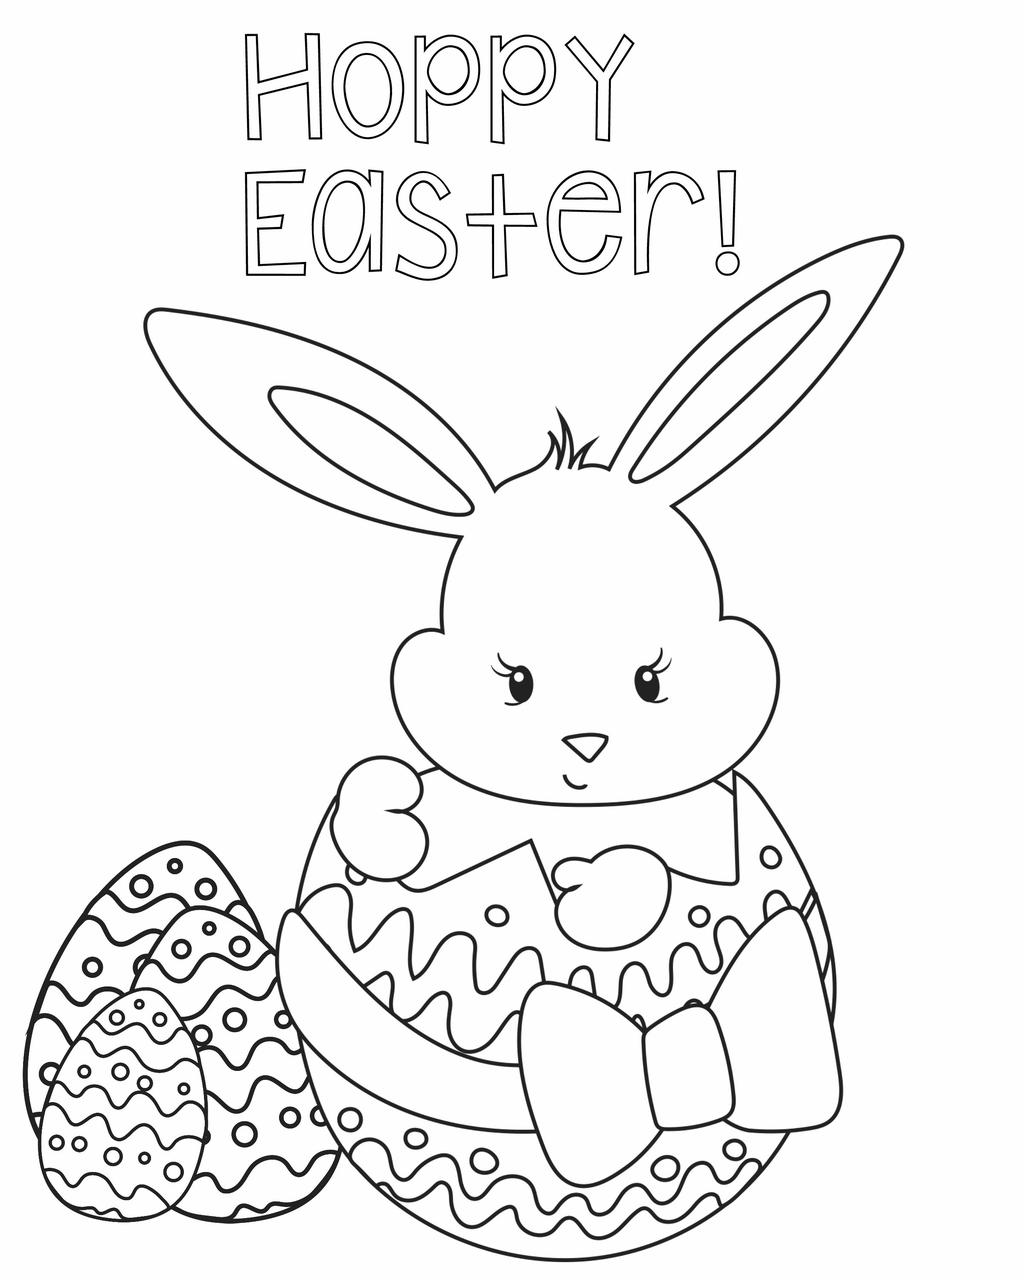 Knuffle Bunny Coloring Pages 52 Linear Free Printable Coloring Pages